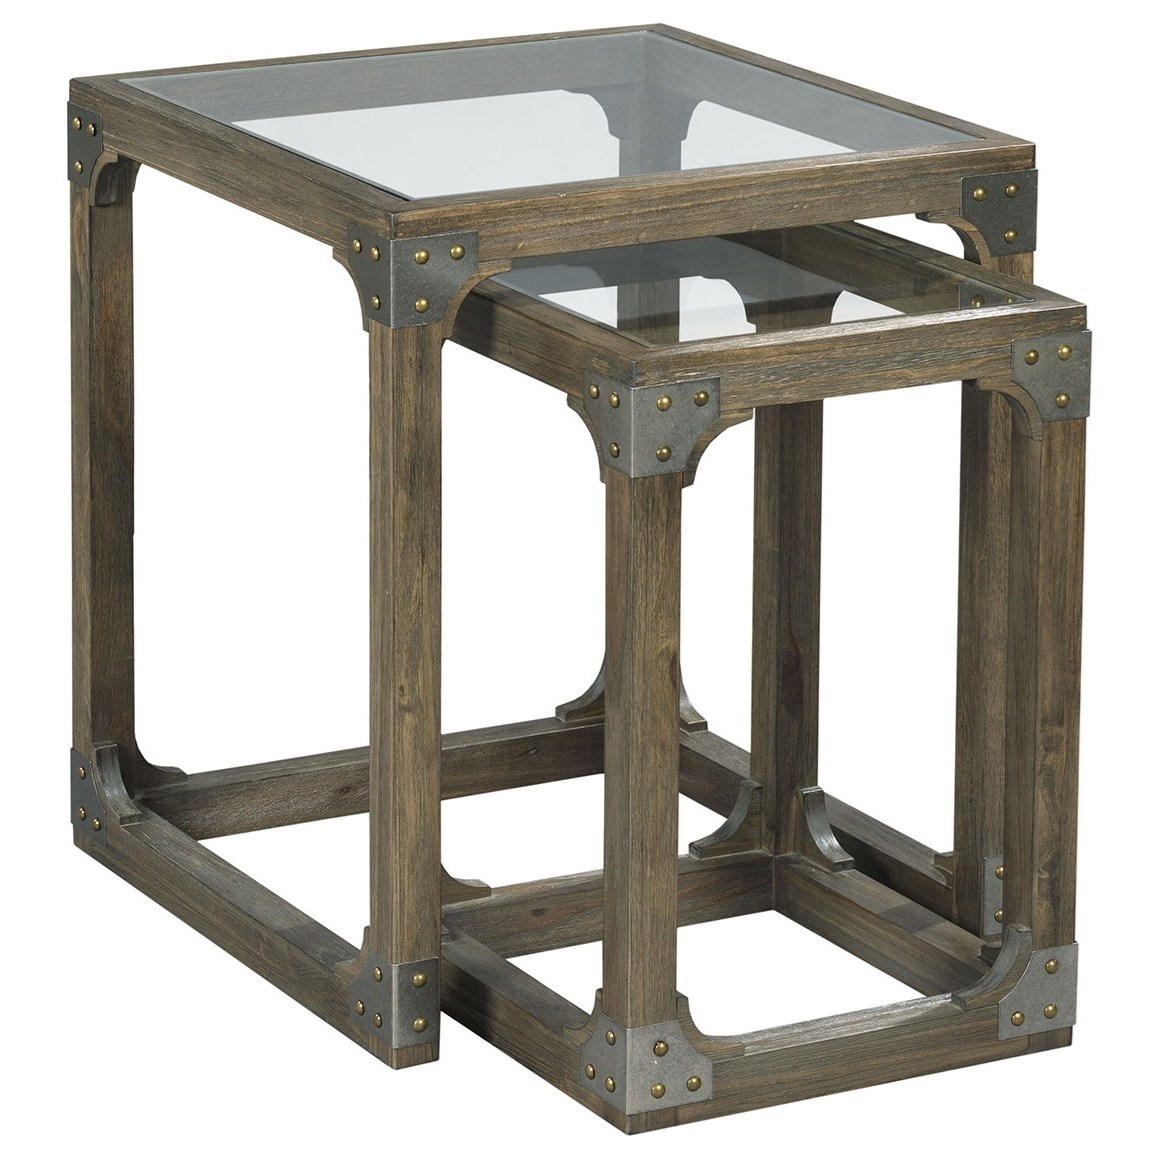 Hammary Hidden Treasures Rustic Nesting Tables With Tempered Glass Tops